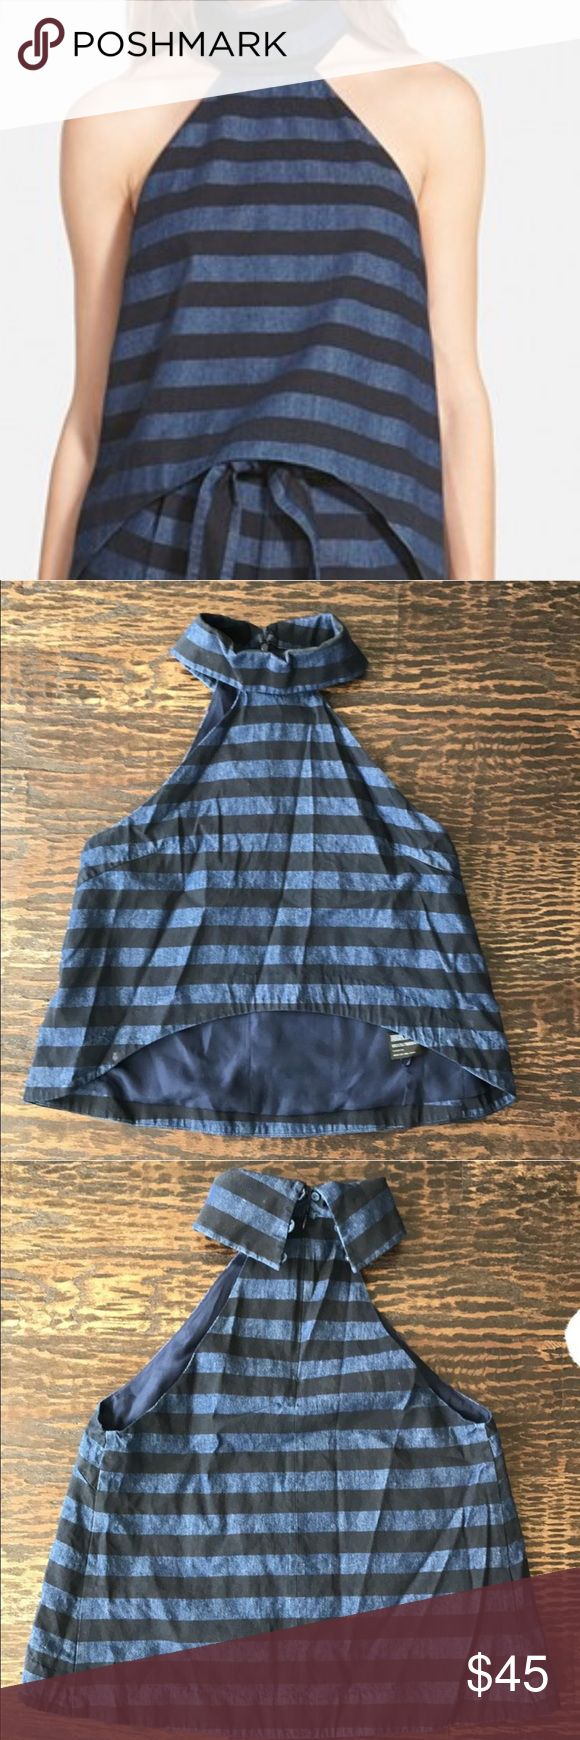 """Finders Keepers The Label Stripe Halter Top Navy and chambray stripes. Curved hem Halter Top styled with an exaggerated turtleneck. 16"""" center front. Length. 21 1/2 back length. Hidden back zipper. Lined. 100% cotton. Finders Keepers Tops"""